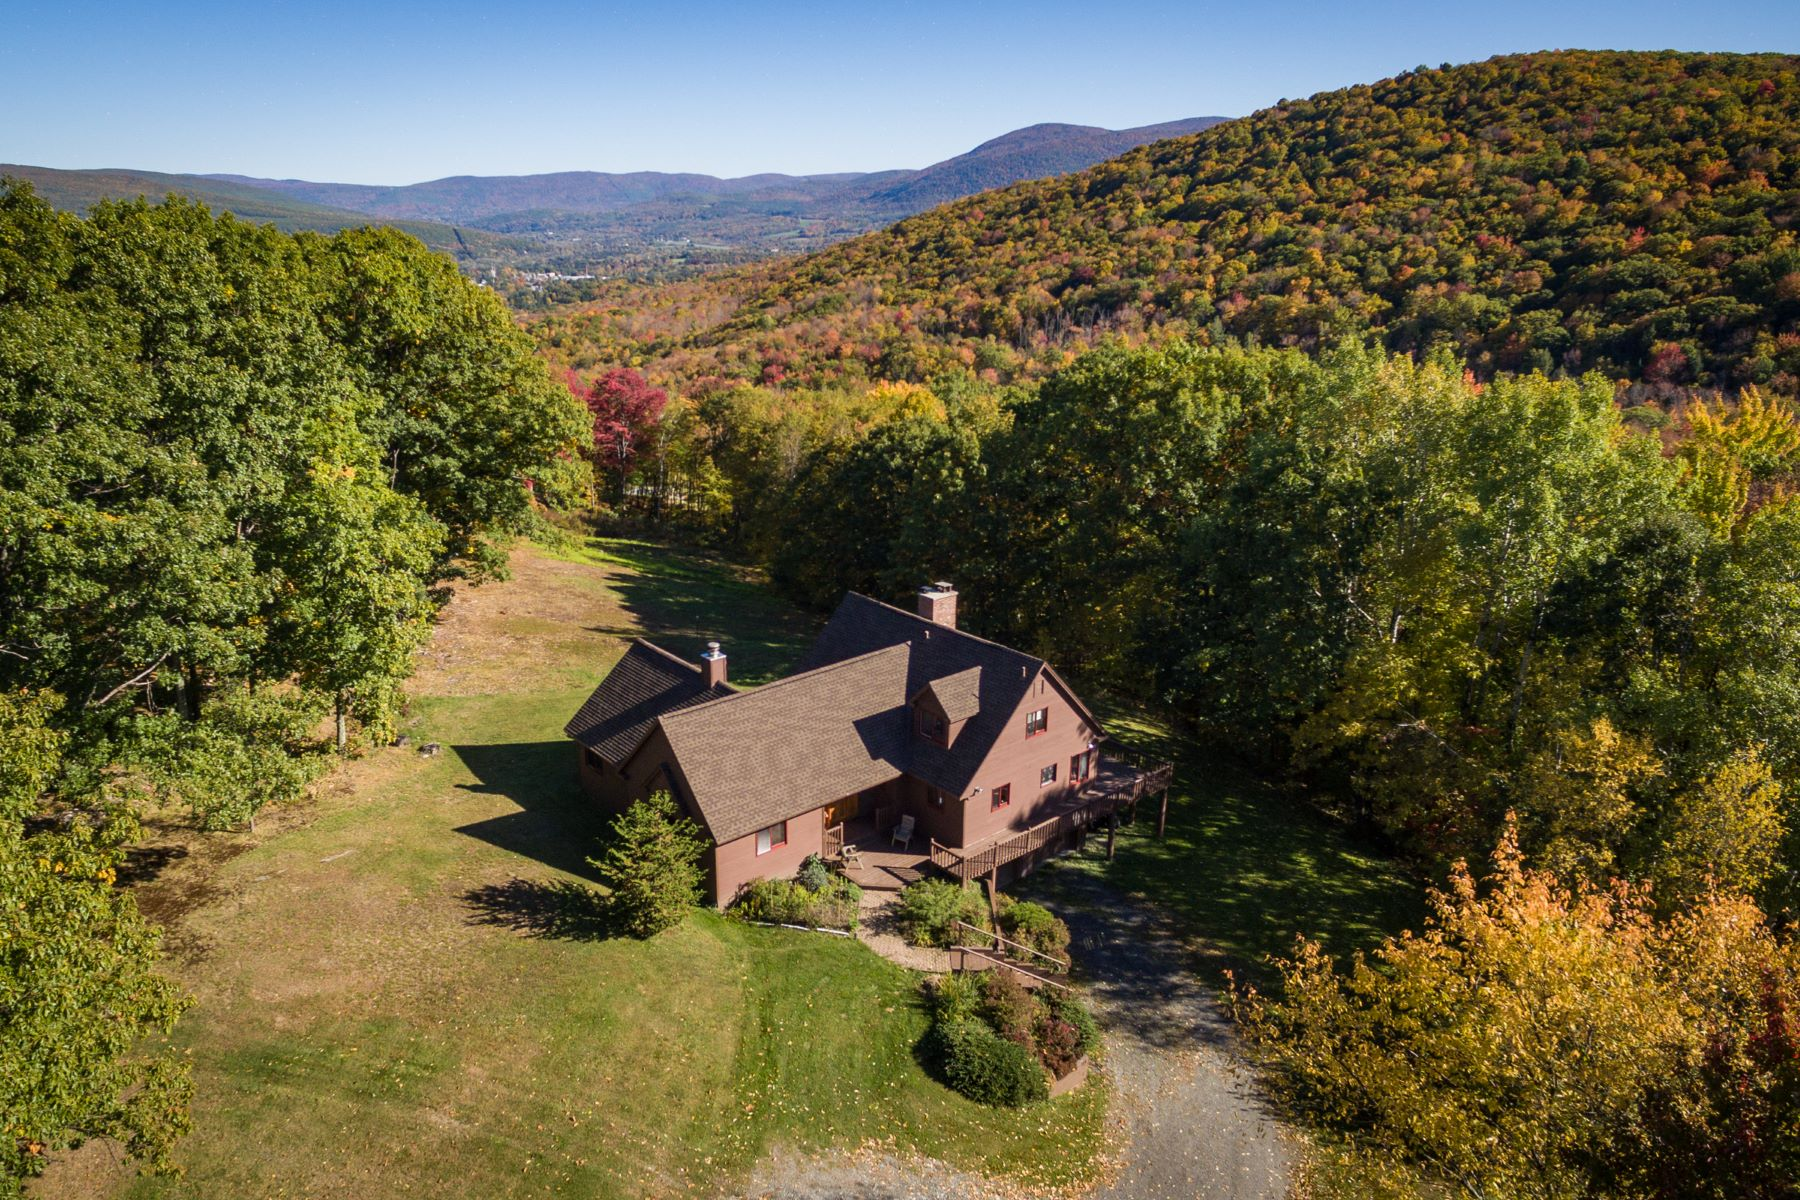 Maison unifamiliale pour l Vente à Spectacular 200-Acre Parcel with Two Homes, Barn, Views Williamstown, Massachusetts, 01267 États-Unis